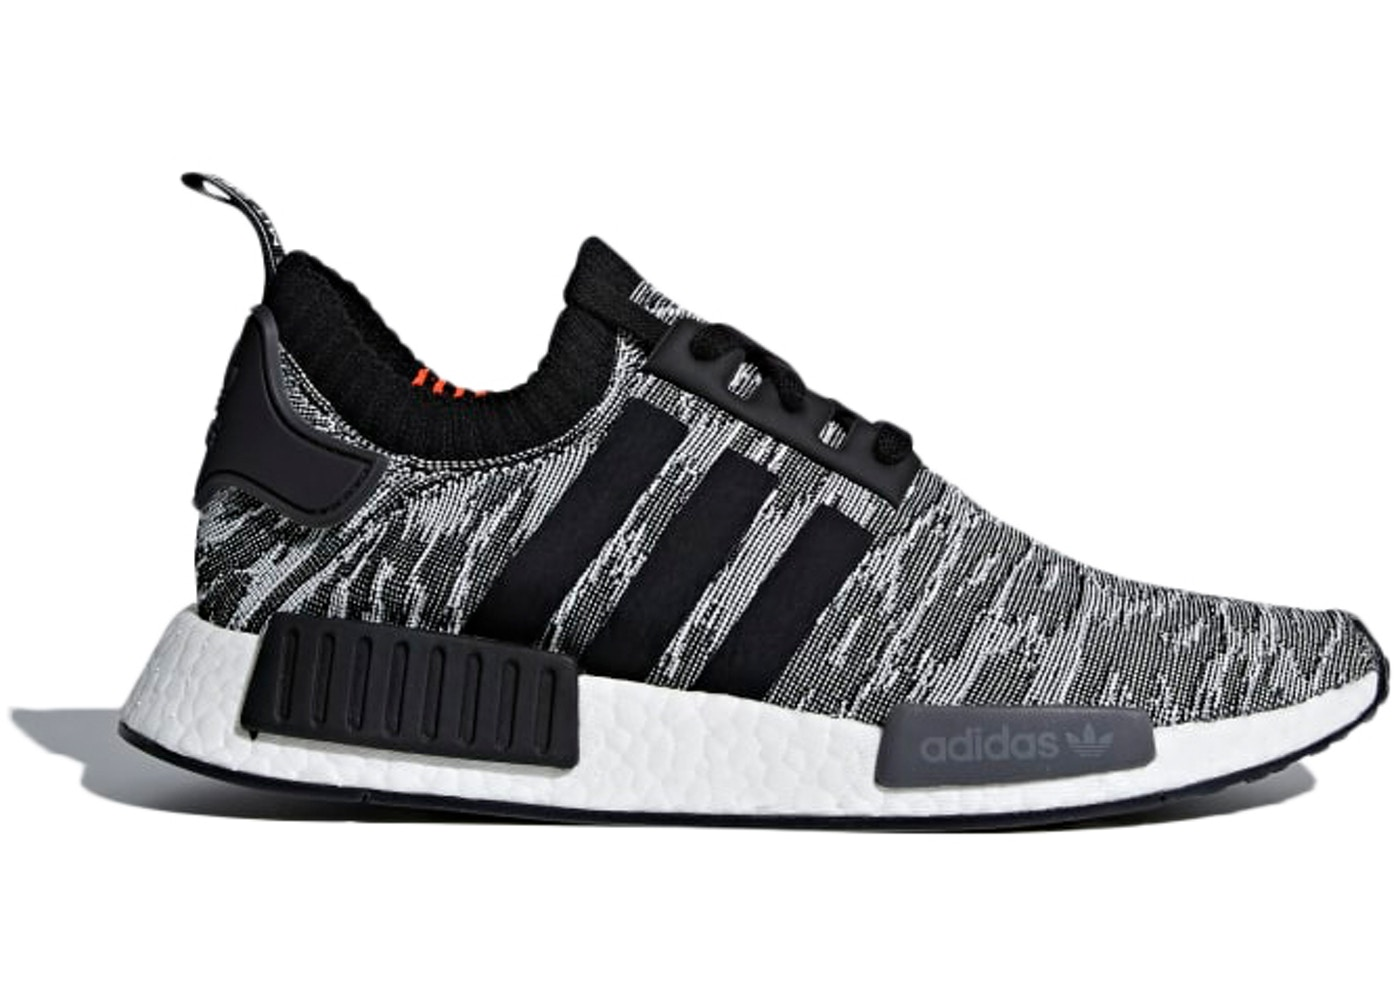 timeless design d2ed4 838d7 Buy adidas NMD Size 13 Shoes  Deadstock Sneakers